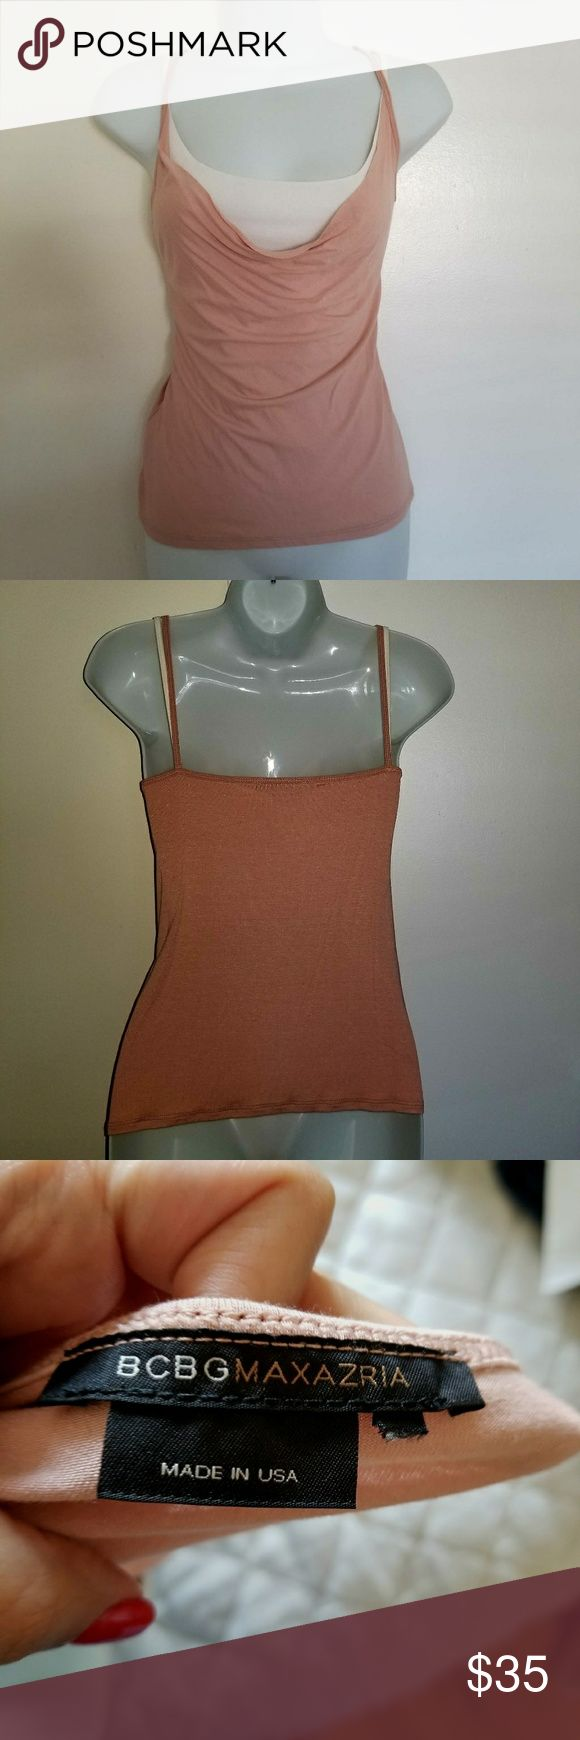 BCBG Max Azria 2Fer Pink/White Camisole, Size L This is such a simple, yet adorable top that would look good for any occasion.  It's almost two tops in one!  Lovely shade of neutral pink, it's a cowl neck cami, with a white camisole cover underneath.  Both strap colors show, which gives the top a really cute look.    PLEASE NOTE: The size tag was accidentally cut off when I snipped of the price tag, but this is a large!! I'm selling my own. Clothes, and I always wear either a large or medium…